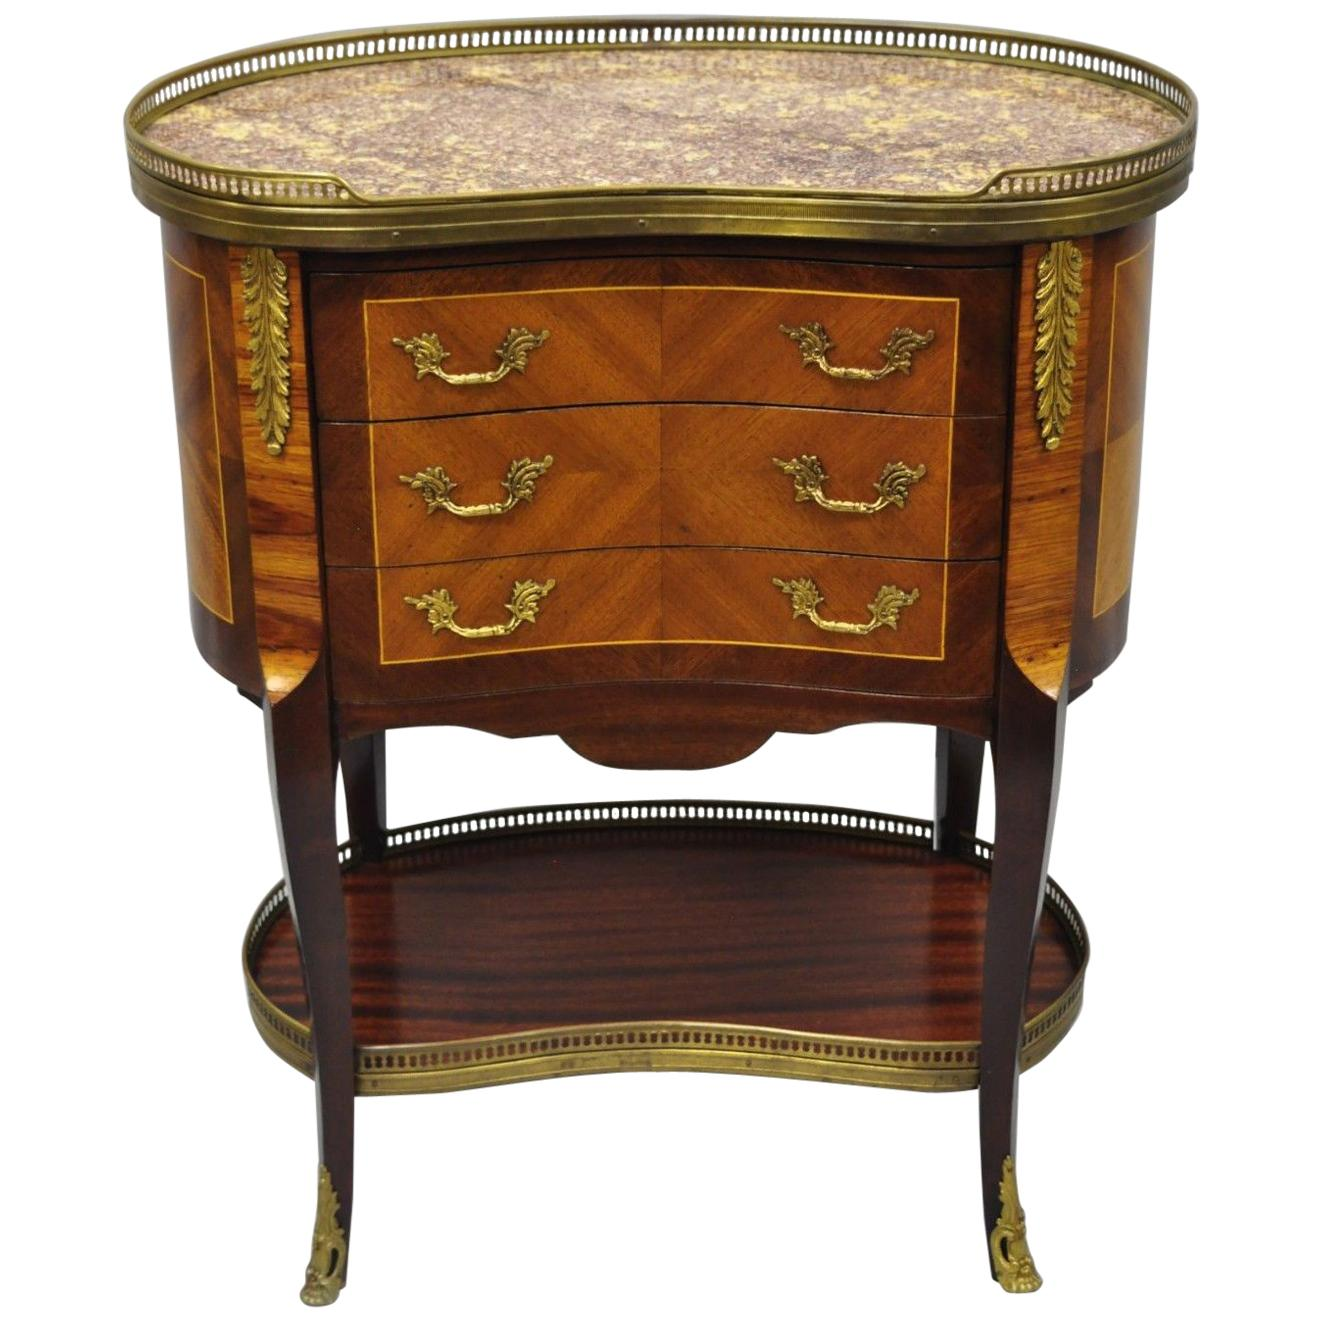 Louis XV French Style Kidney Shaped Marble Top Nightstand End Table